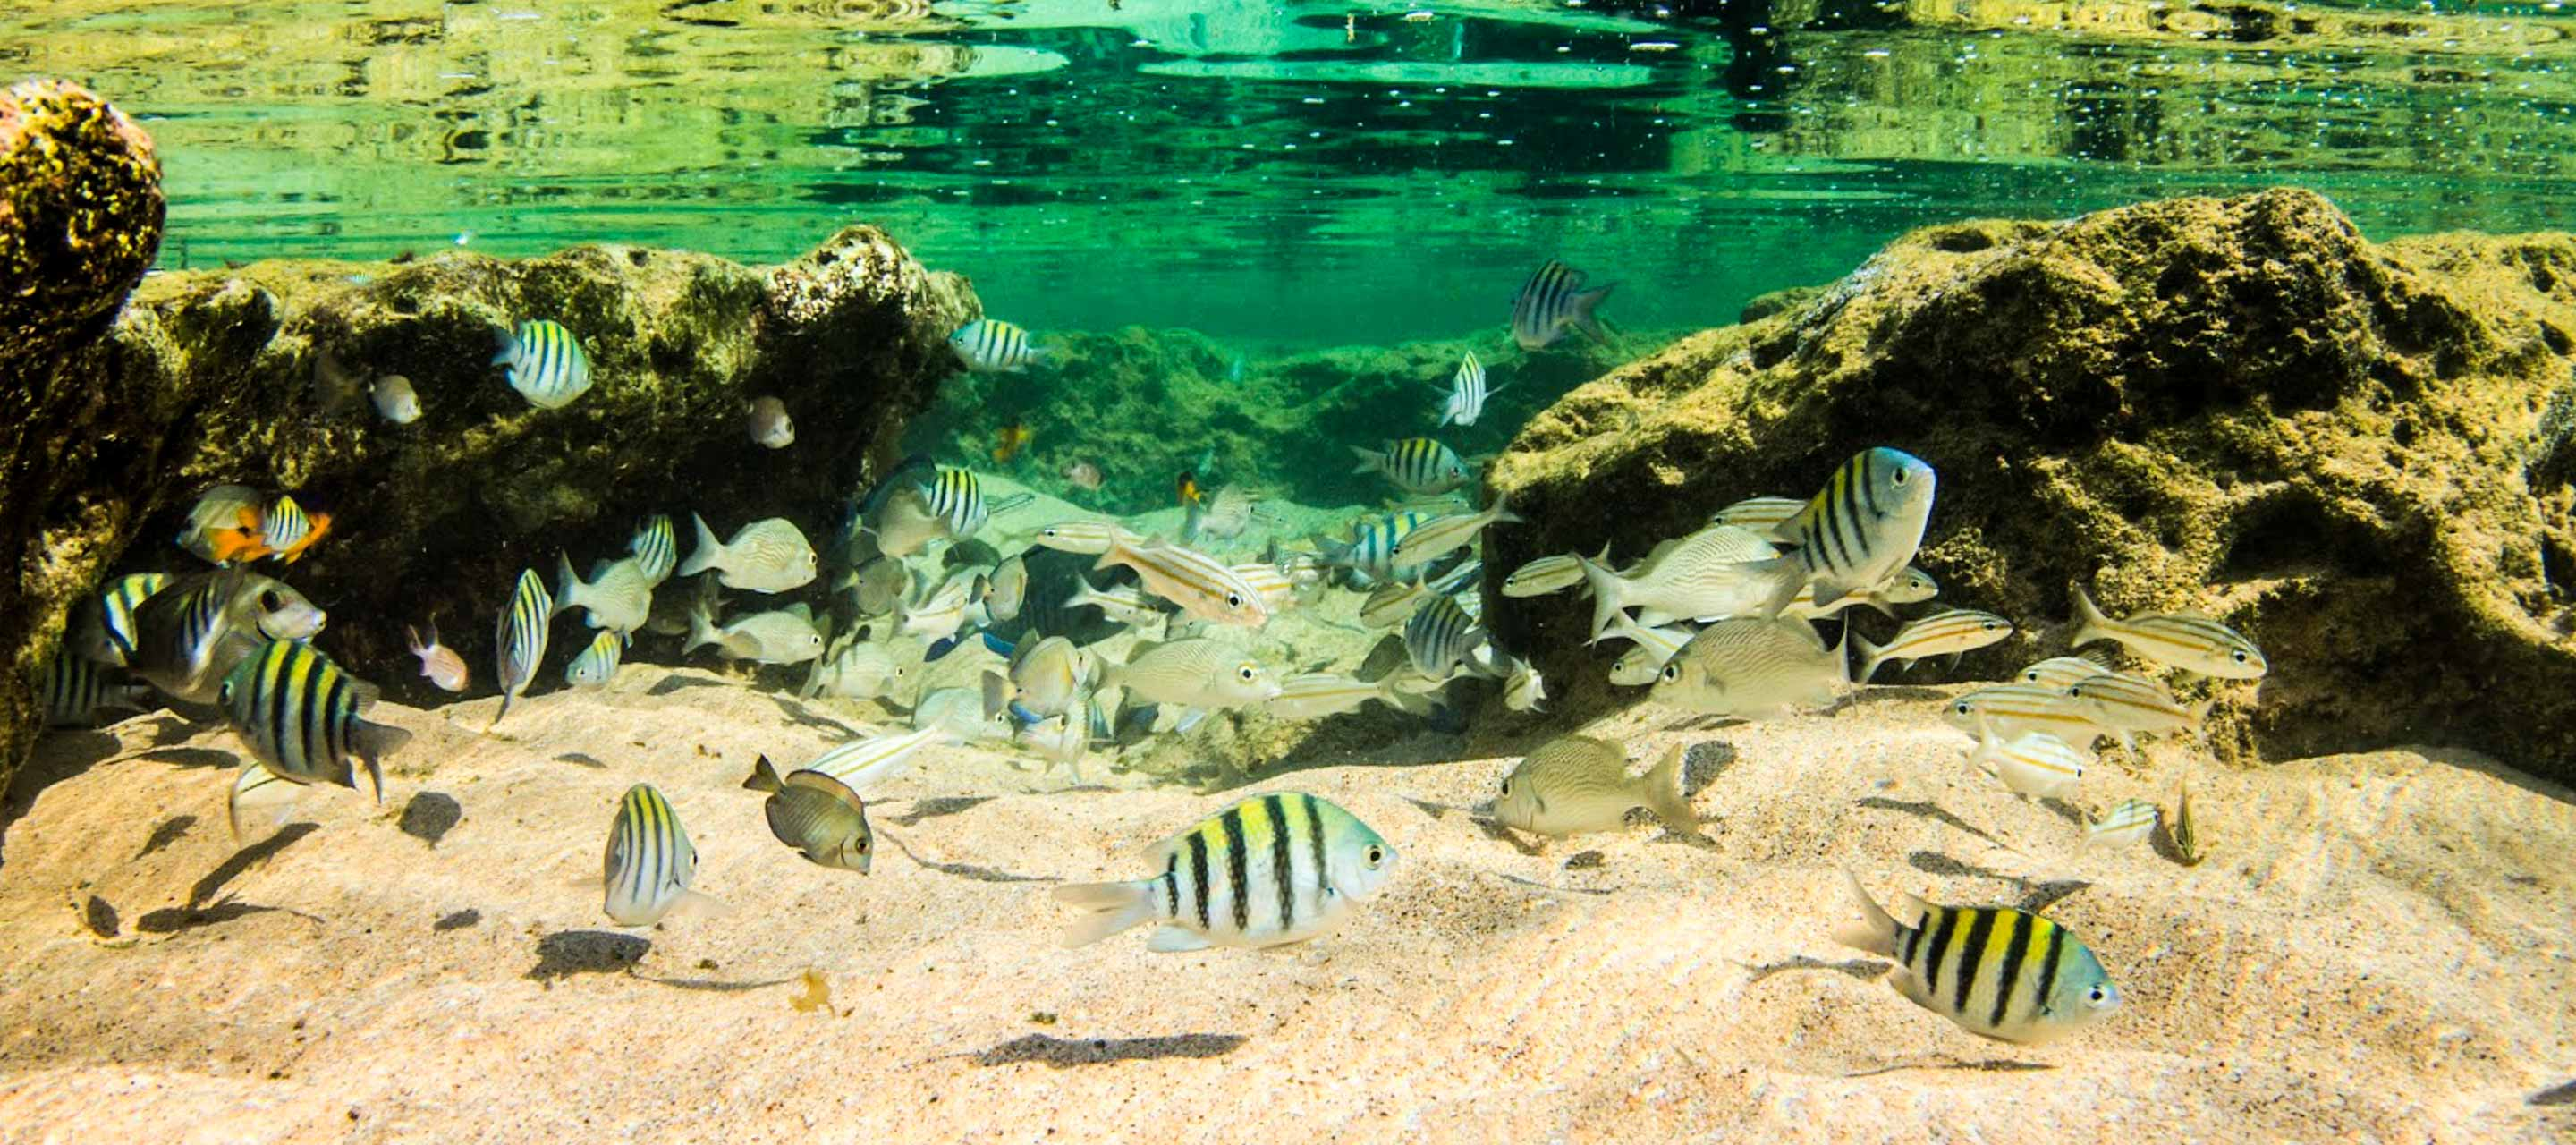 Striped fish swim underwater in Fernando de Noronha